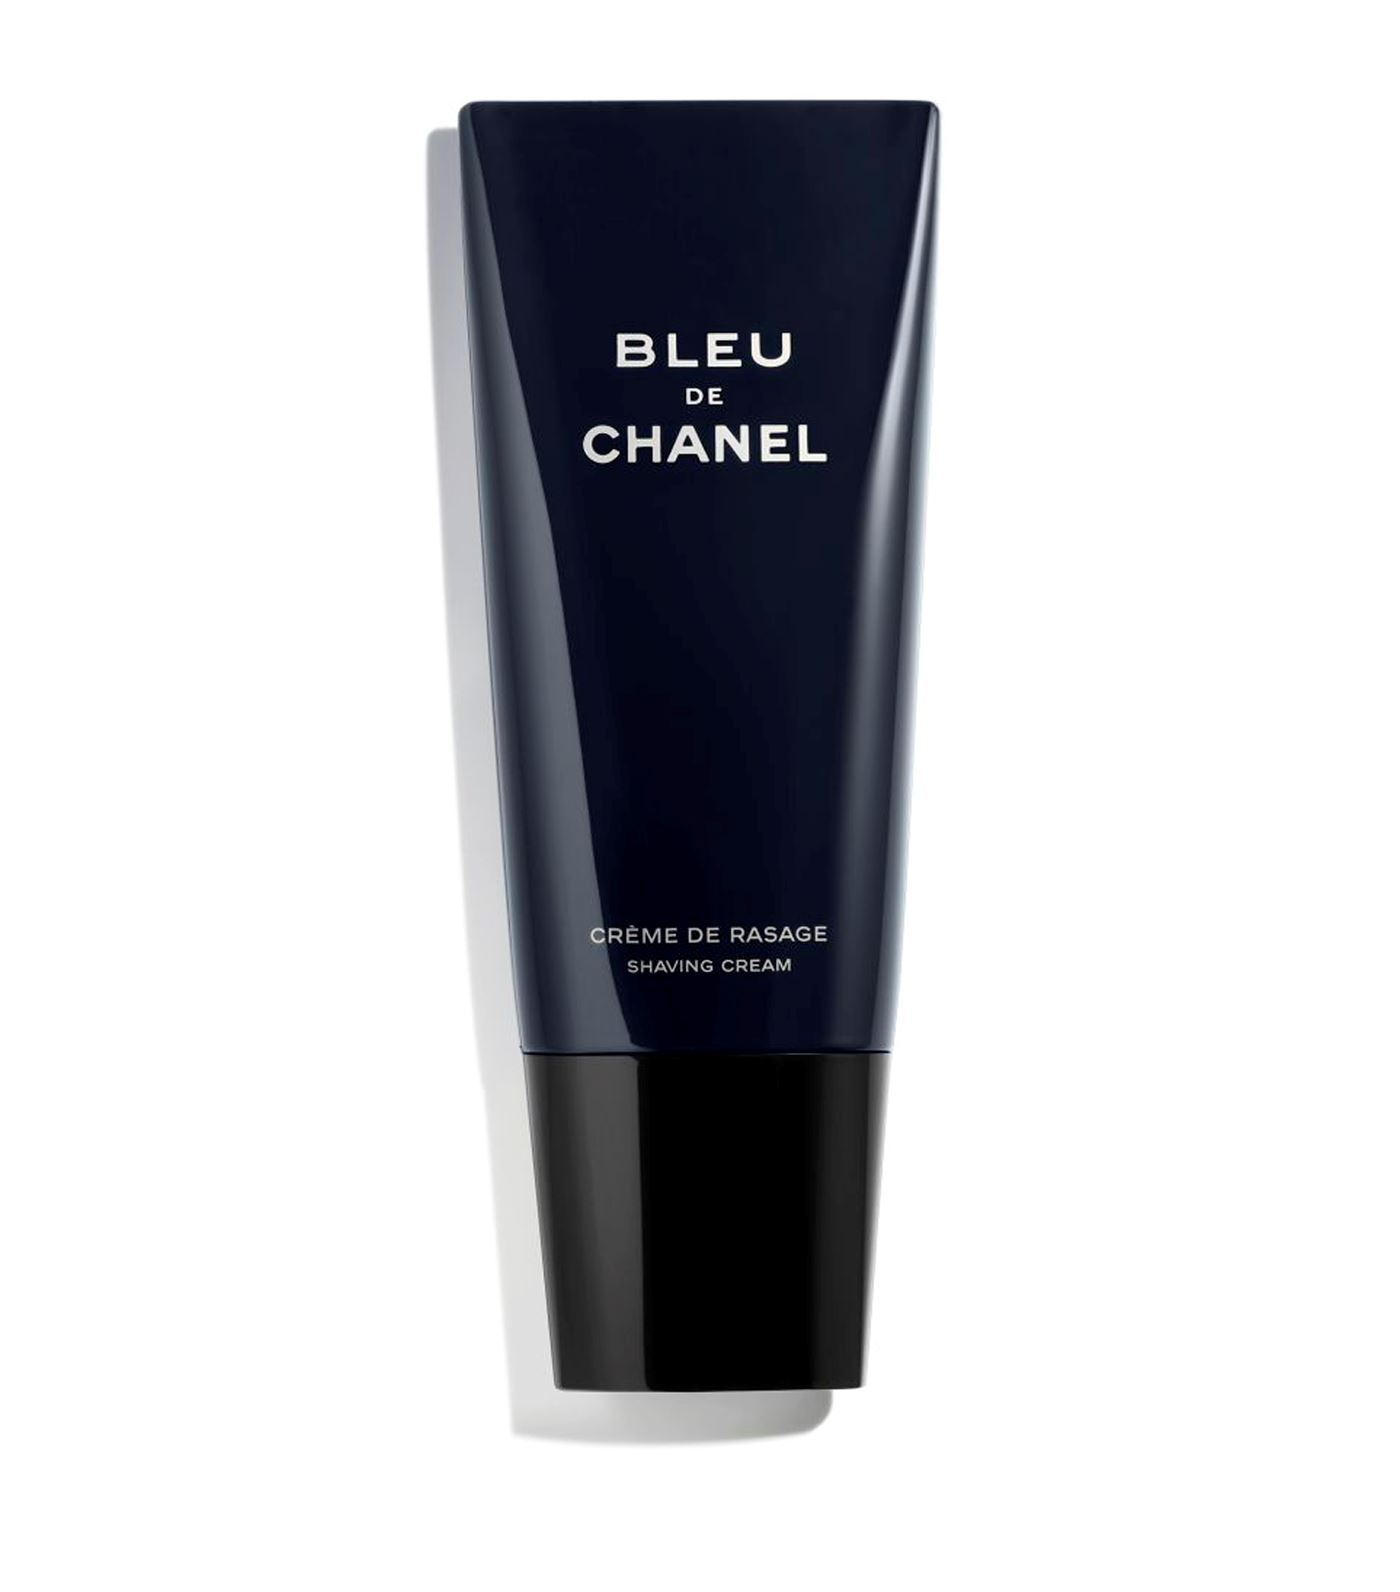 CHANEL - The perfect addition to your daily skincare routine, Chanel's Bleu de Chanel shaving cream